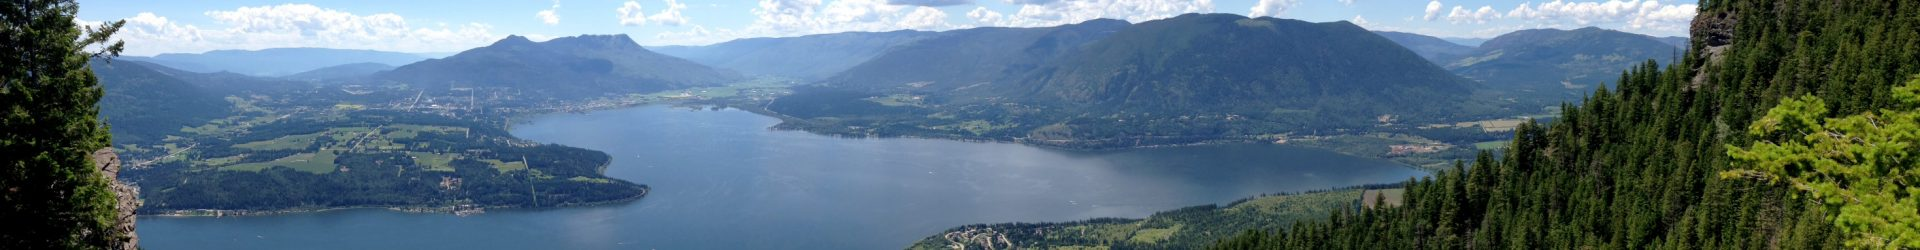 Salmon-Arm-lakes cropped